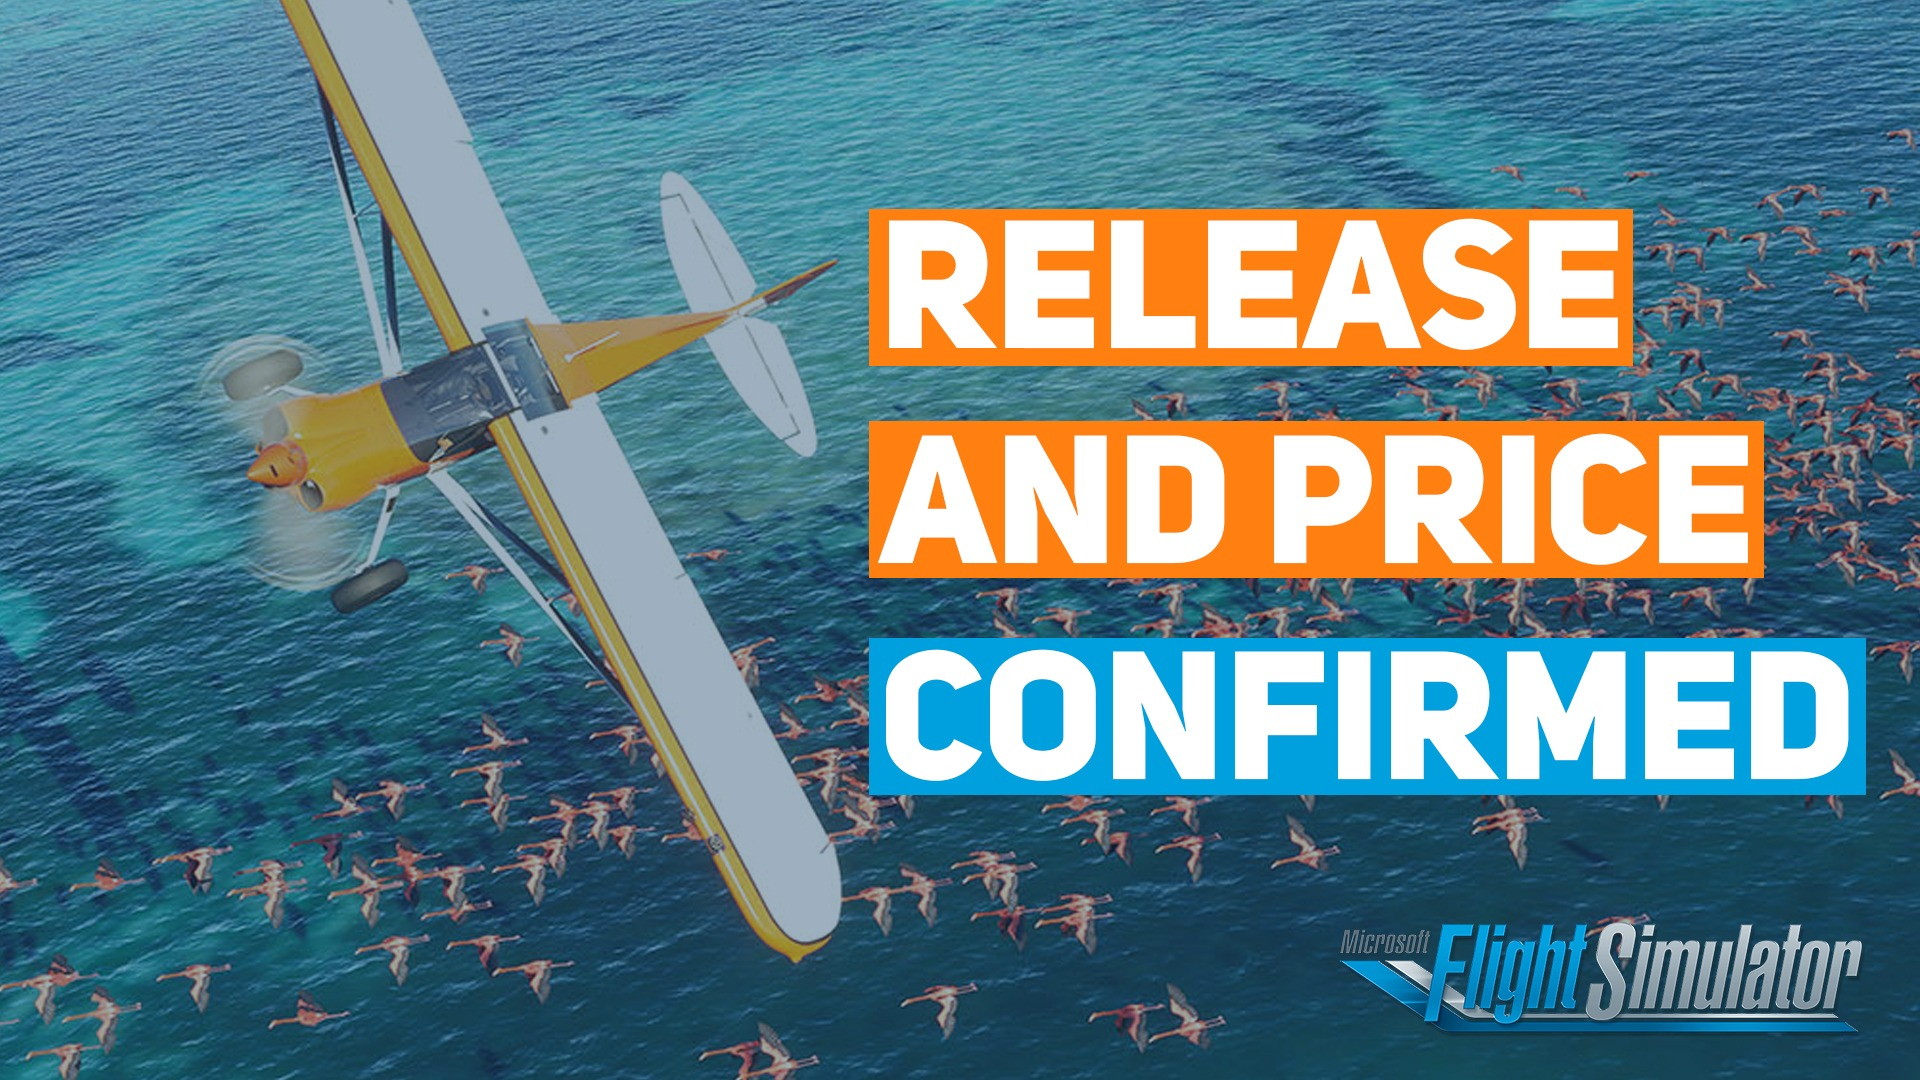 MSFS-Release-Info-JPG Microsoft Flight Simulator Release Date and Pricing Confirmed